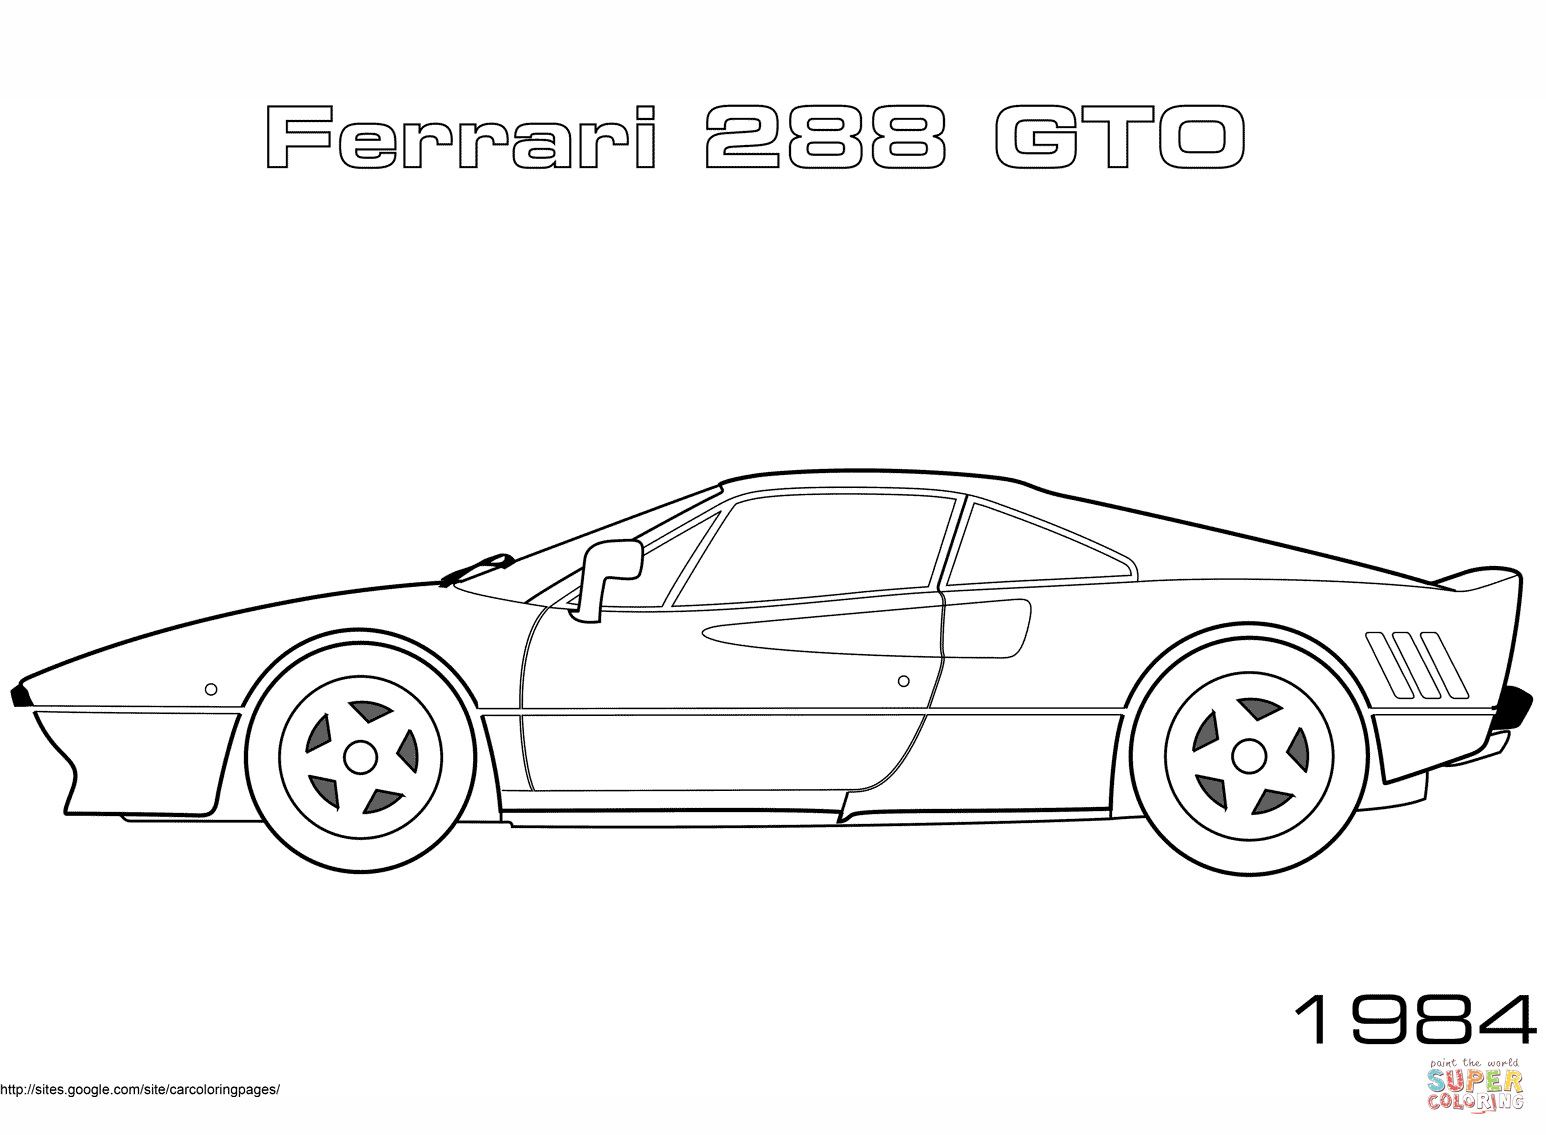 1984 Ferrari 288 Gto Coloring Page Free Printable Coloring Pages